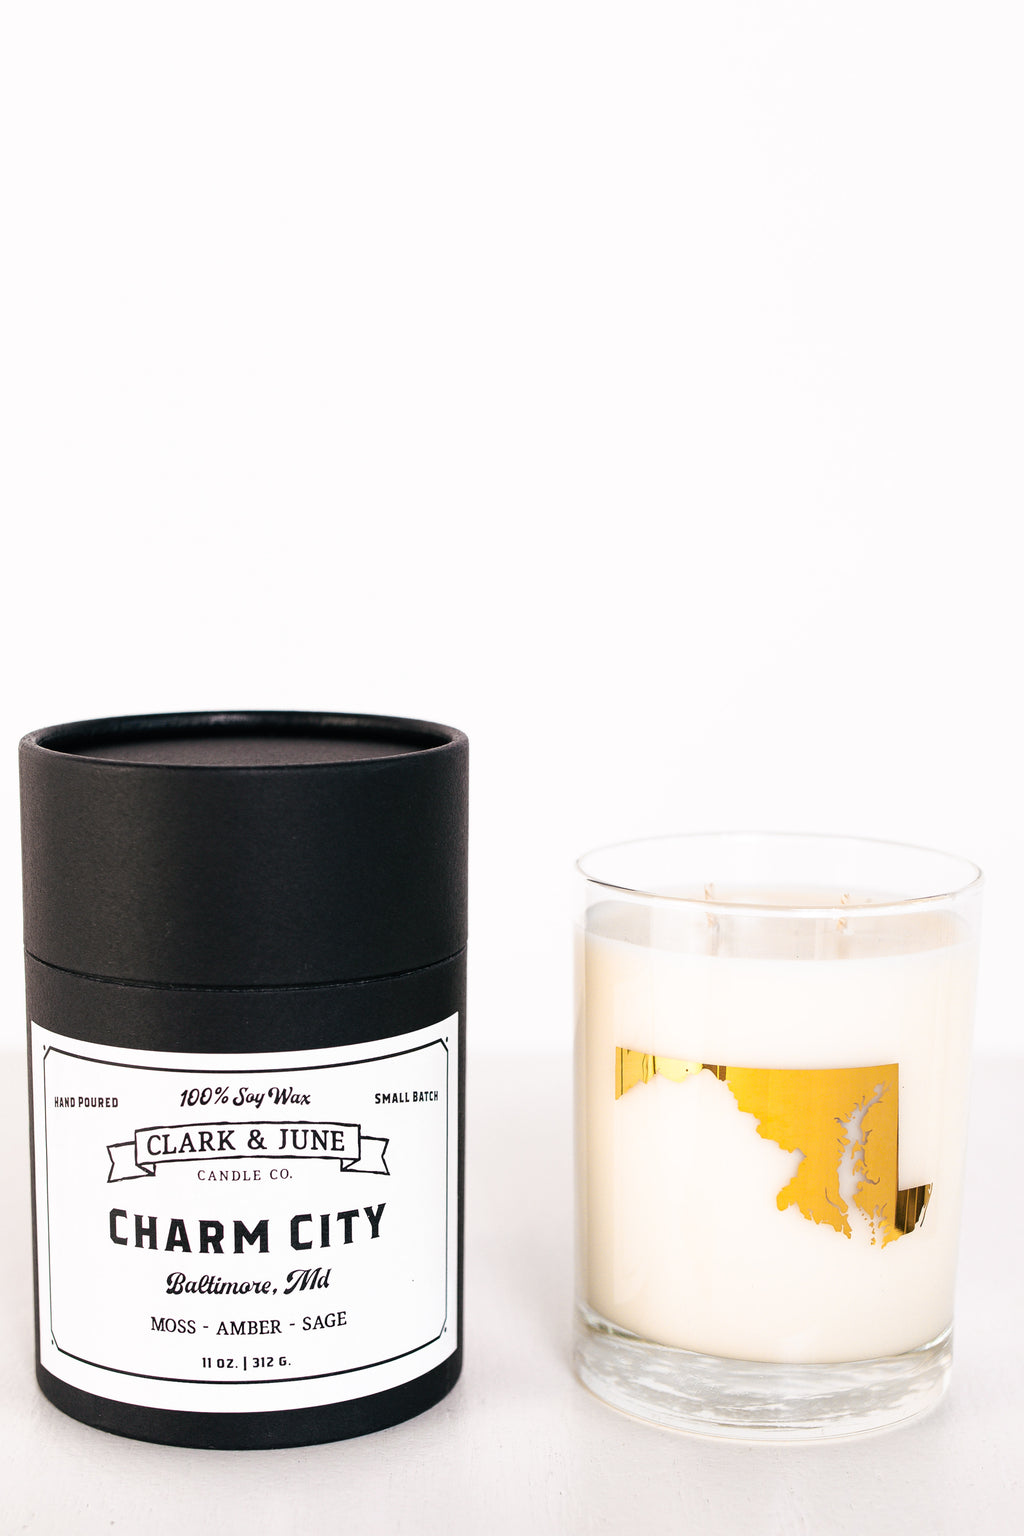 Clark & June Charm City Candle